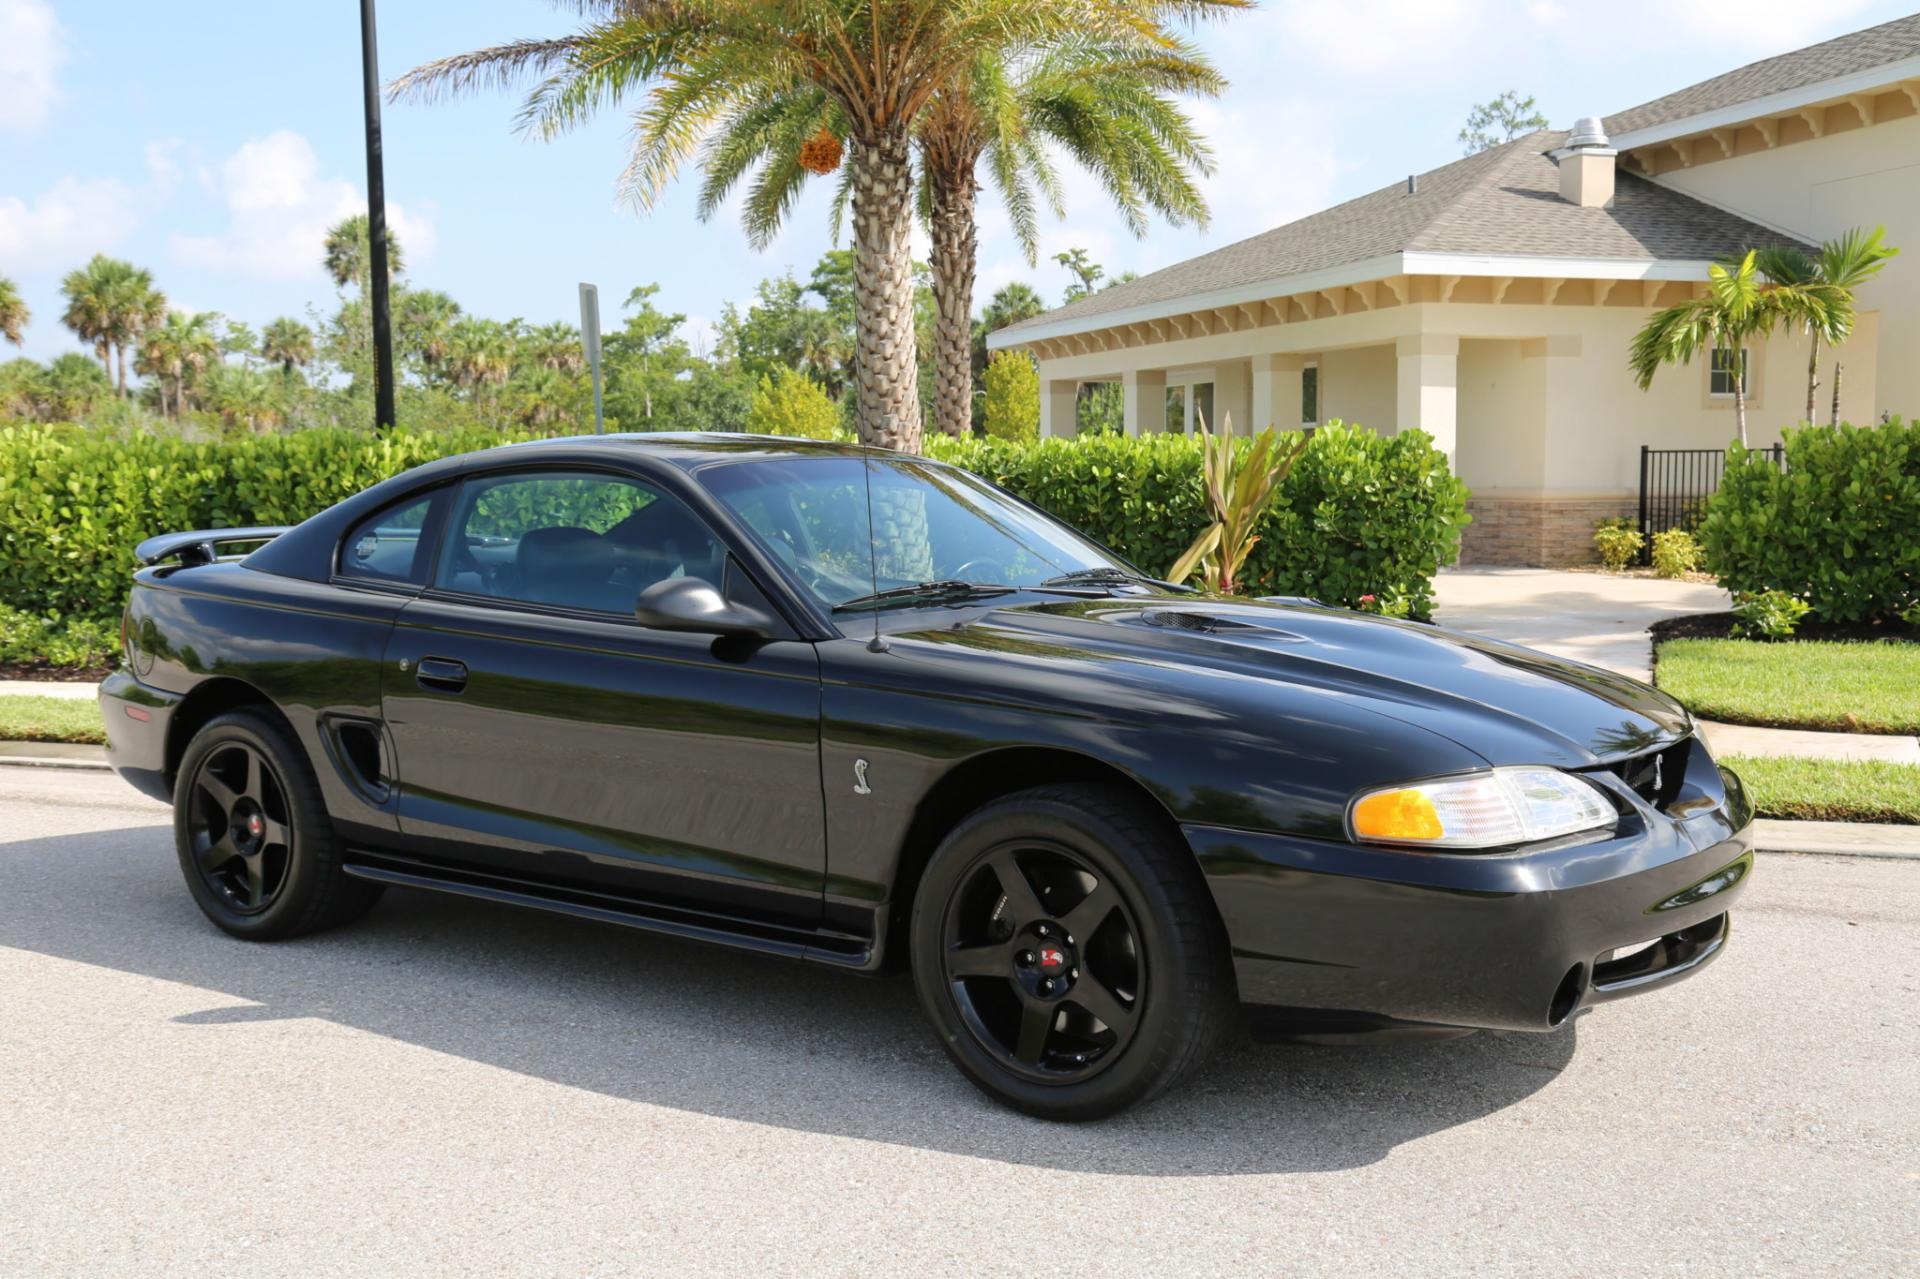 Used 1996 Mustang Cobra SVT Cobra for sale Sold at Muscle Cars for Sale Inc. in Fort Myers FL 33912 7